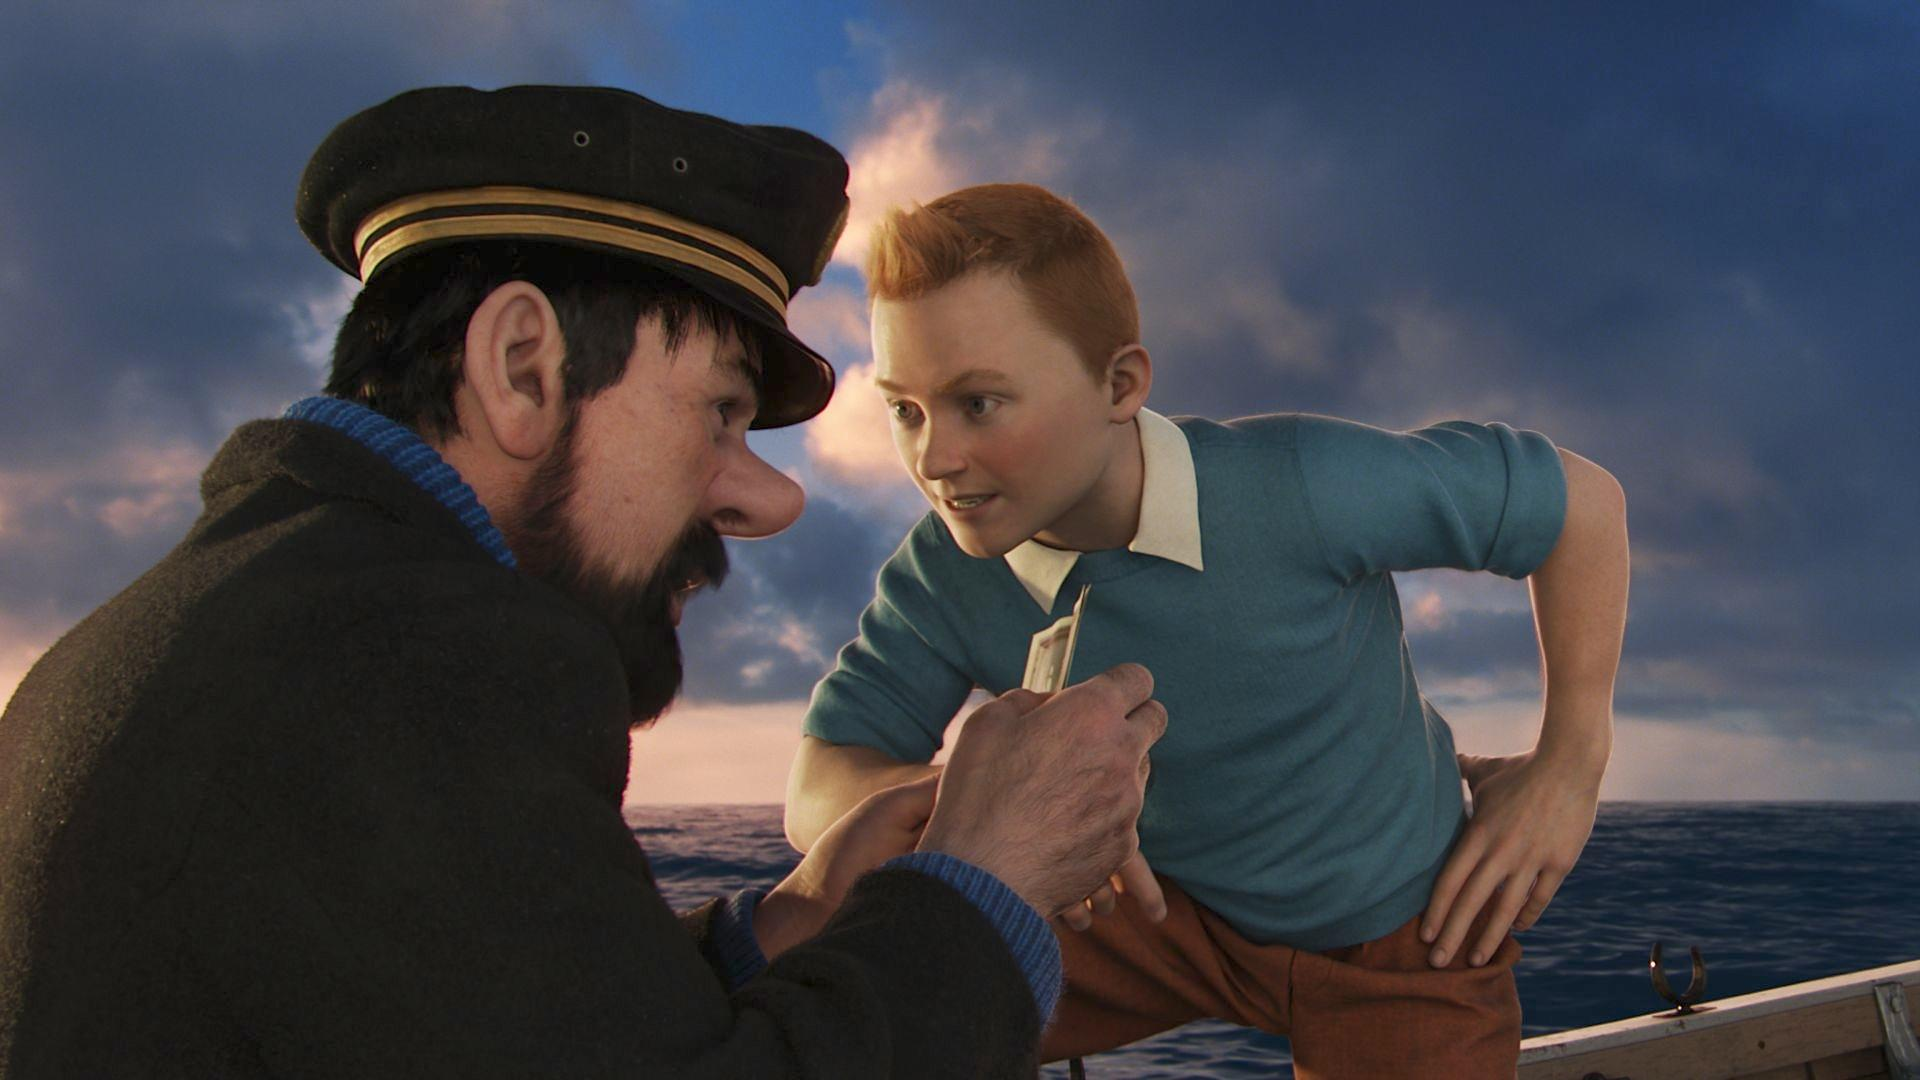 Left to right: Captain Haddock (Andy Serkis) and Tintin (Jamie Bell) in